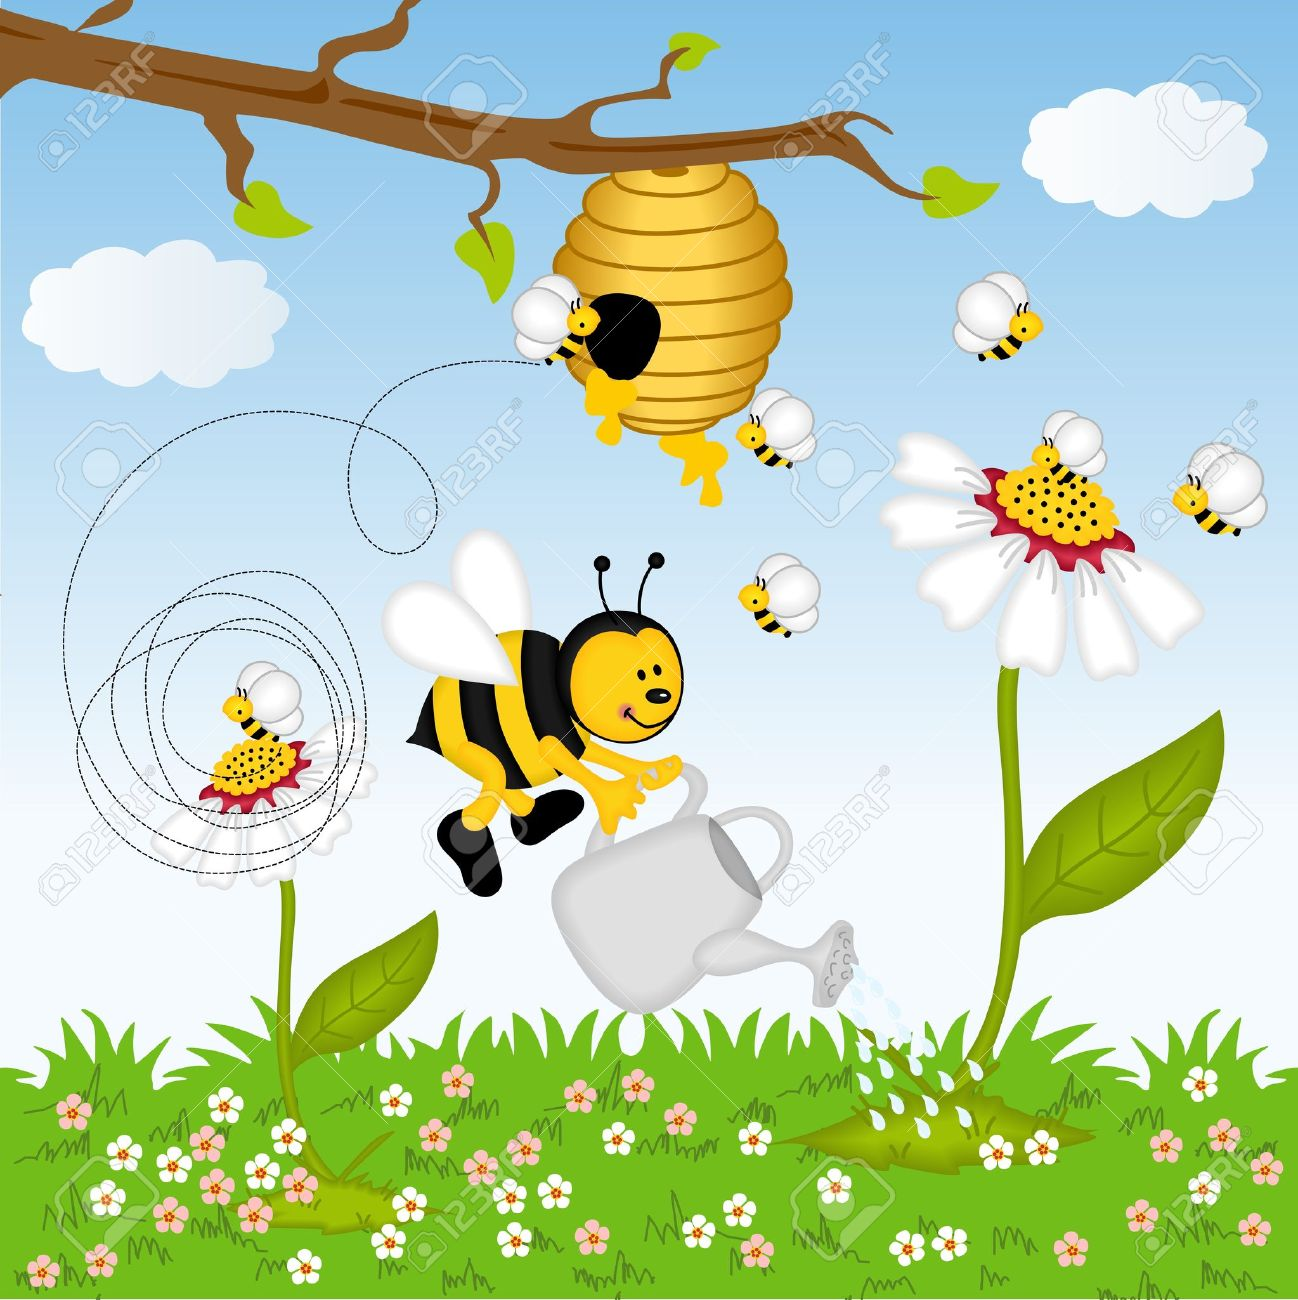 Bee Watering Flower In The Forest Royalty Free Cliparts, Vectors.